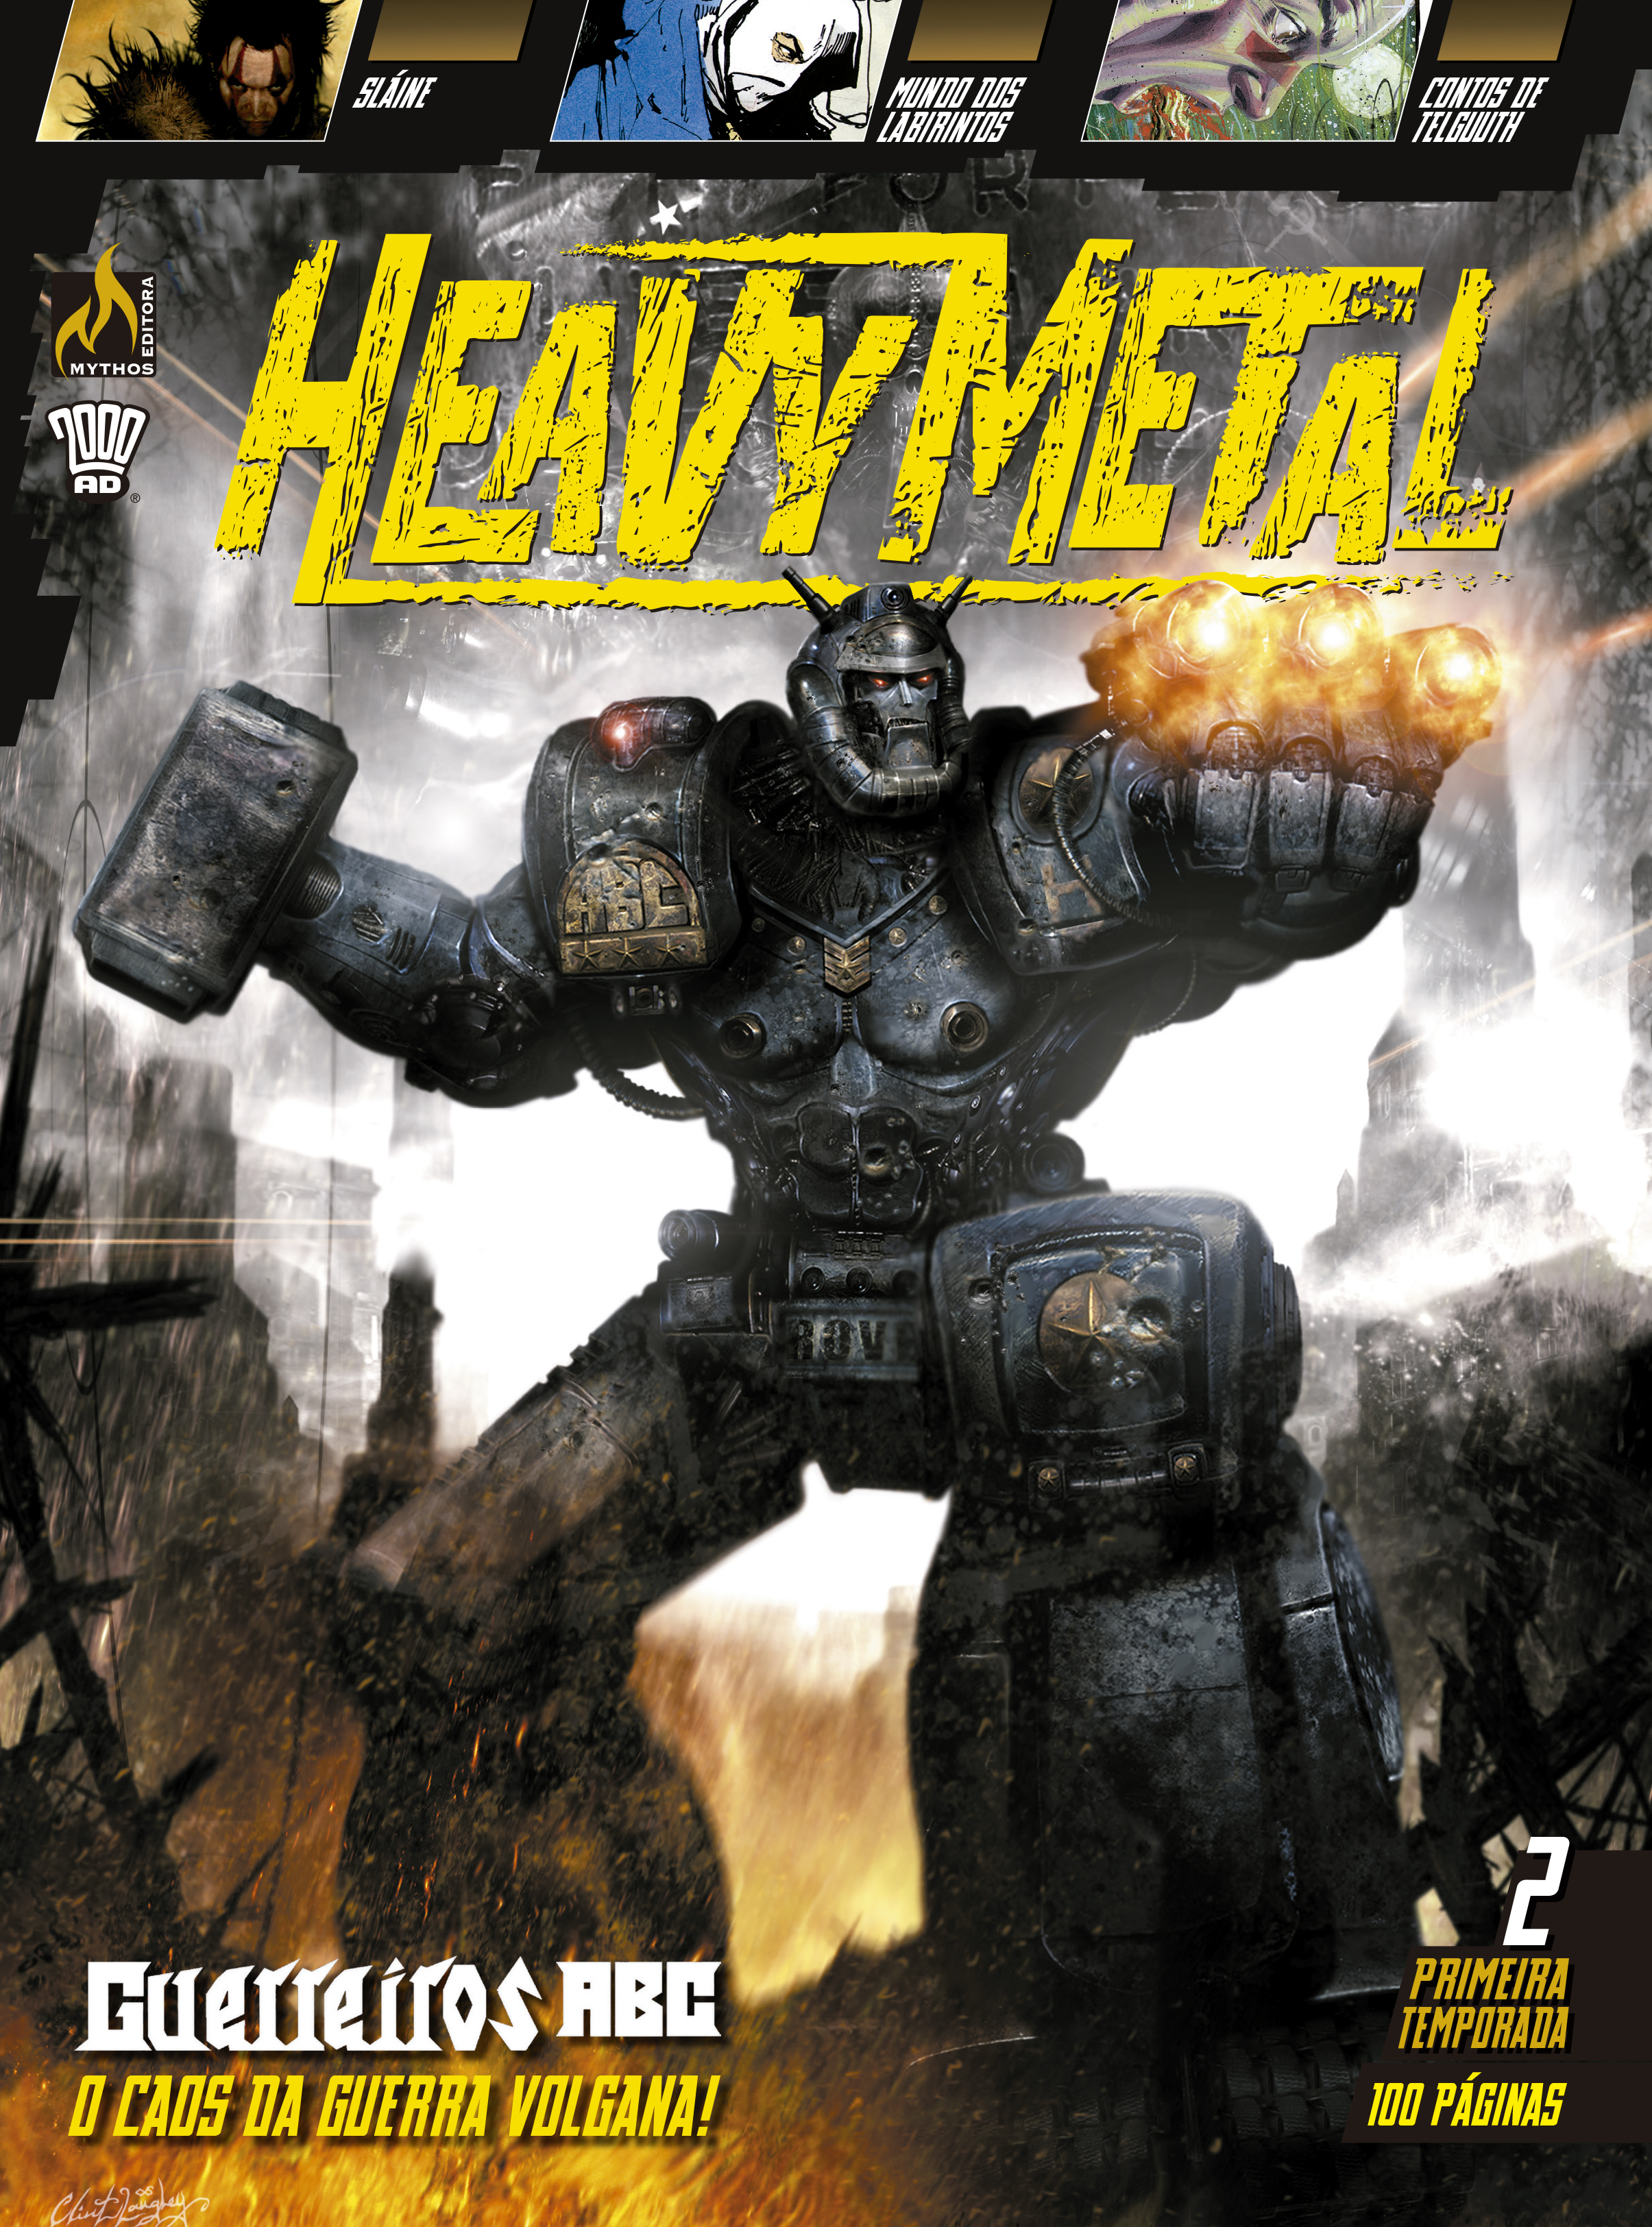 HEAVY METAL 1ª TEMPORADA - EPISÓDIO 2